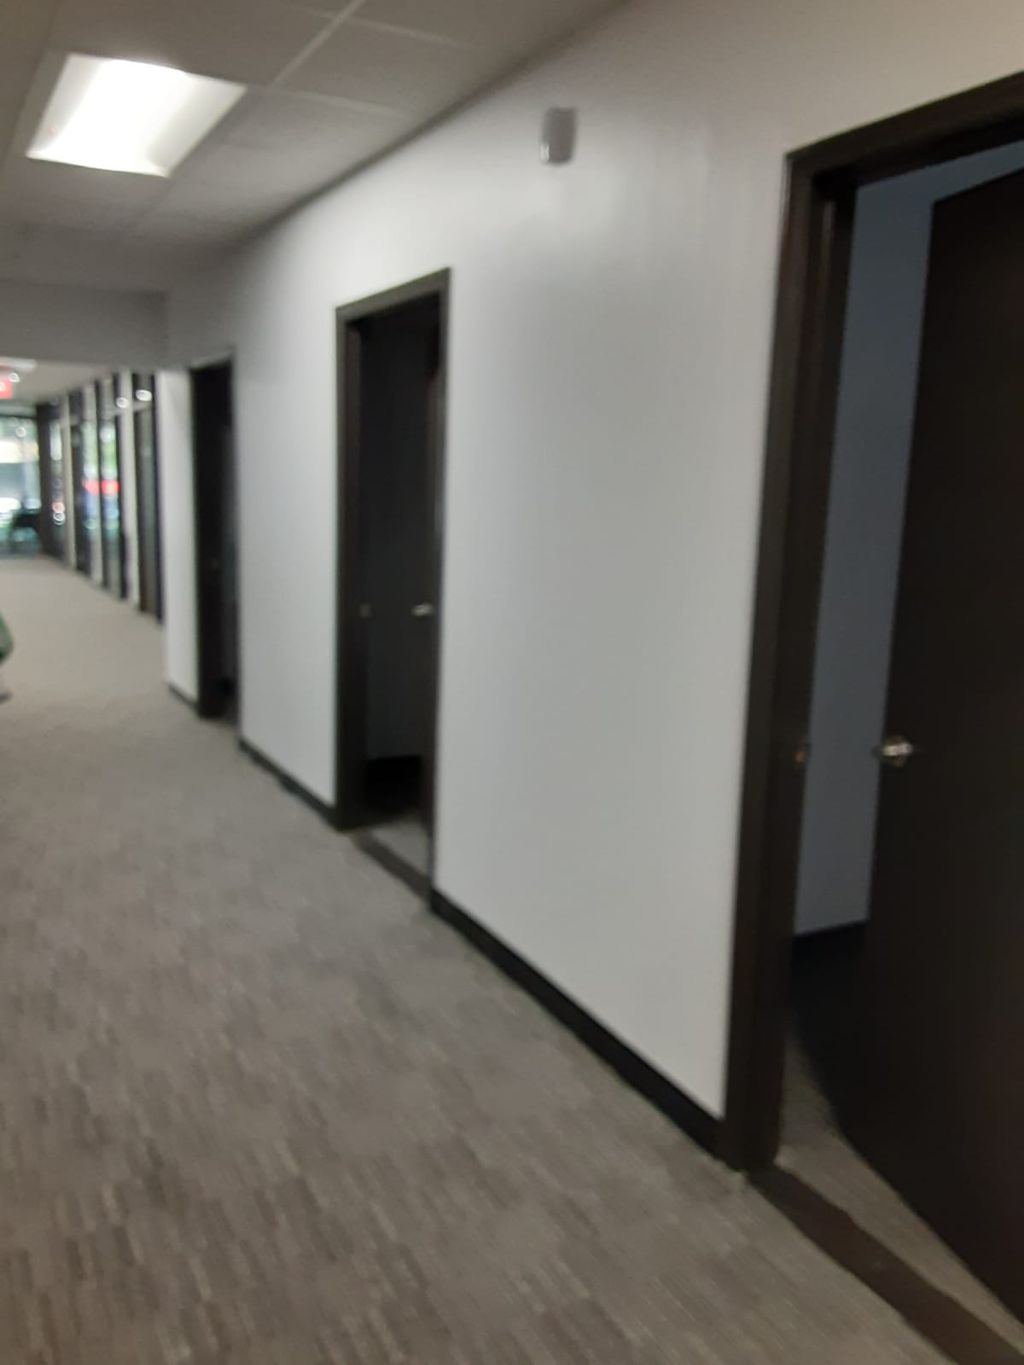 Offices fire rated  doors